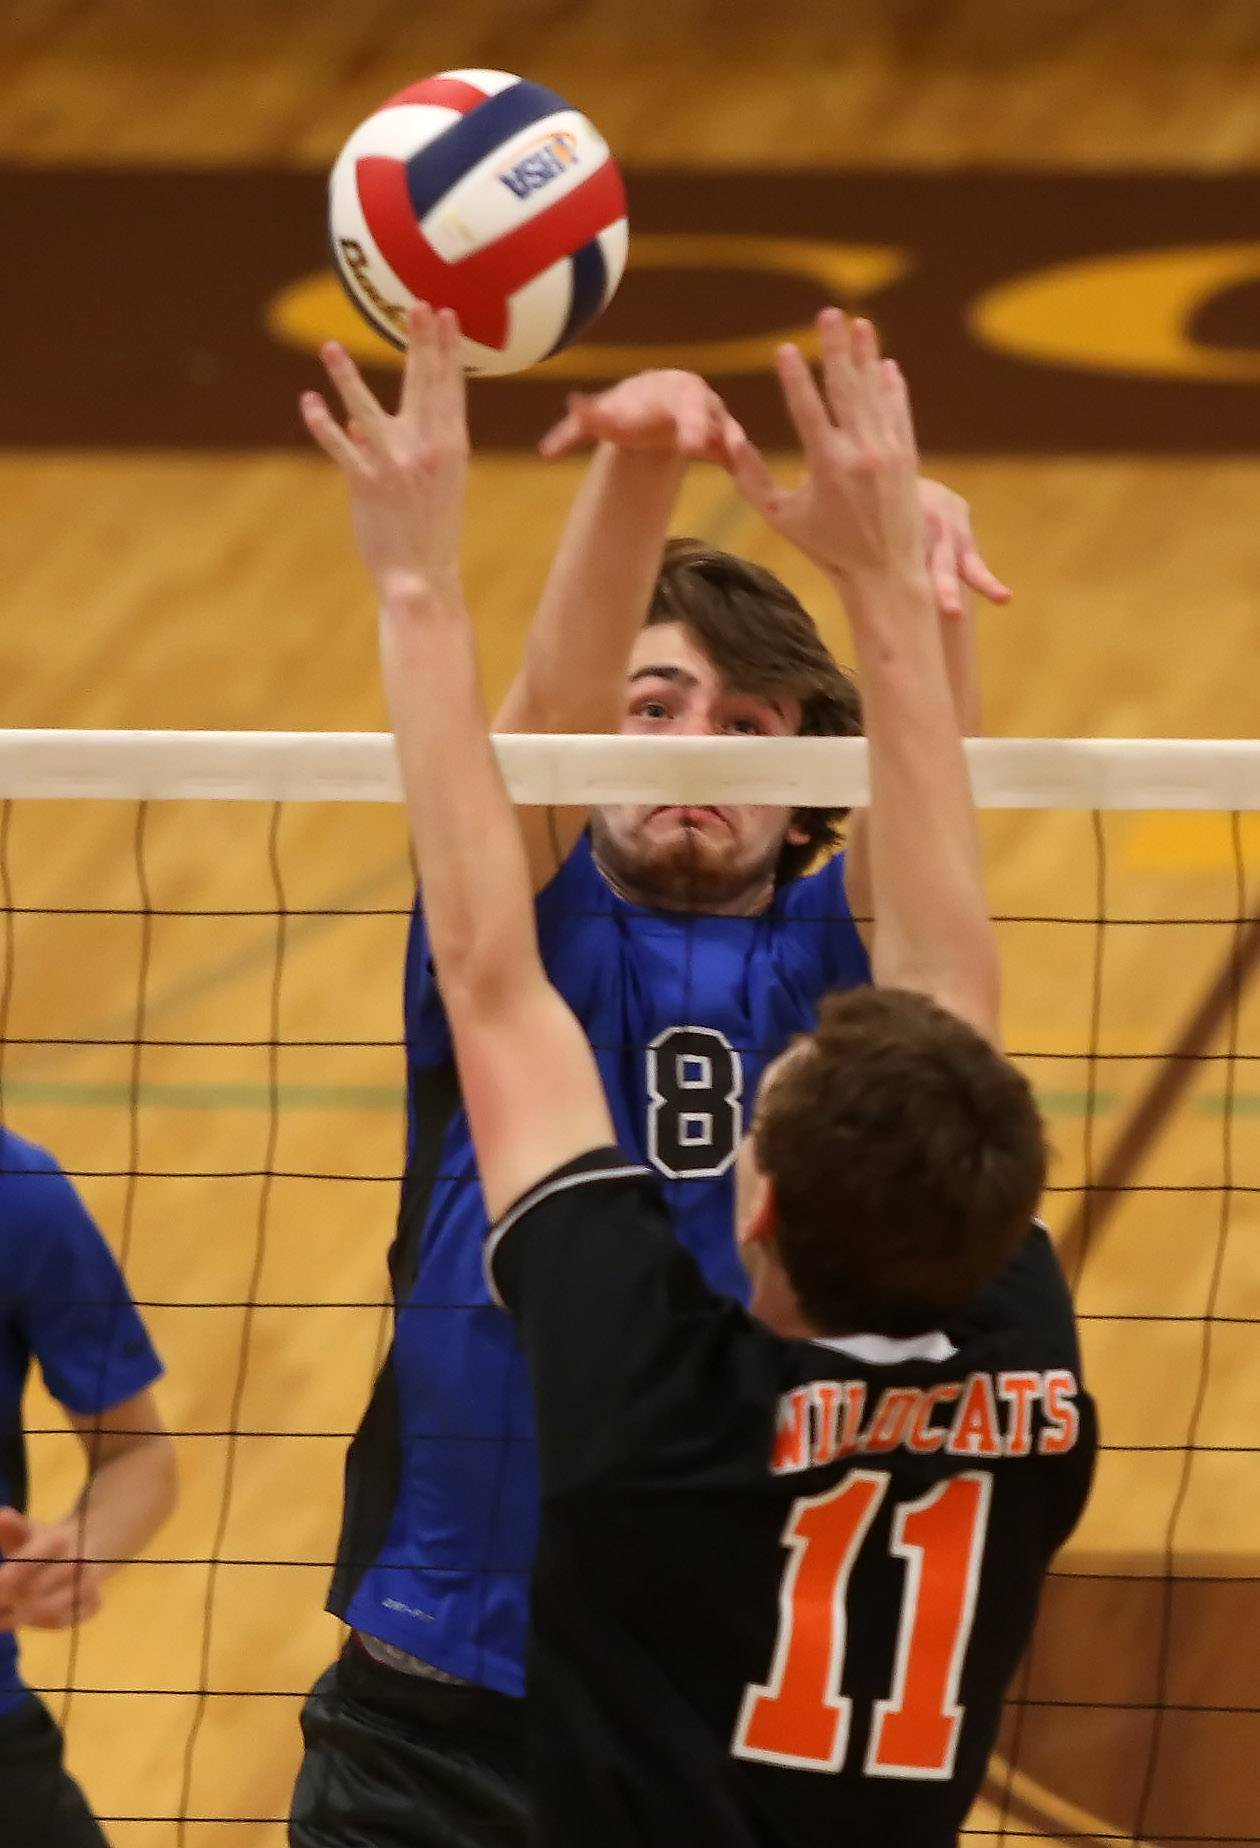 Vernon Hills' Ryan Opitz battles for the ball against Libertyville's Zach Hauser during regional semifinal play Tuesday at Carmel.